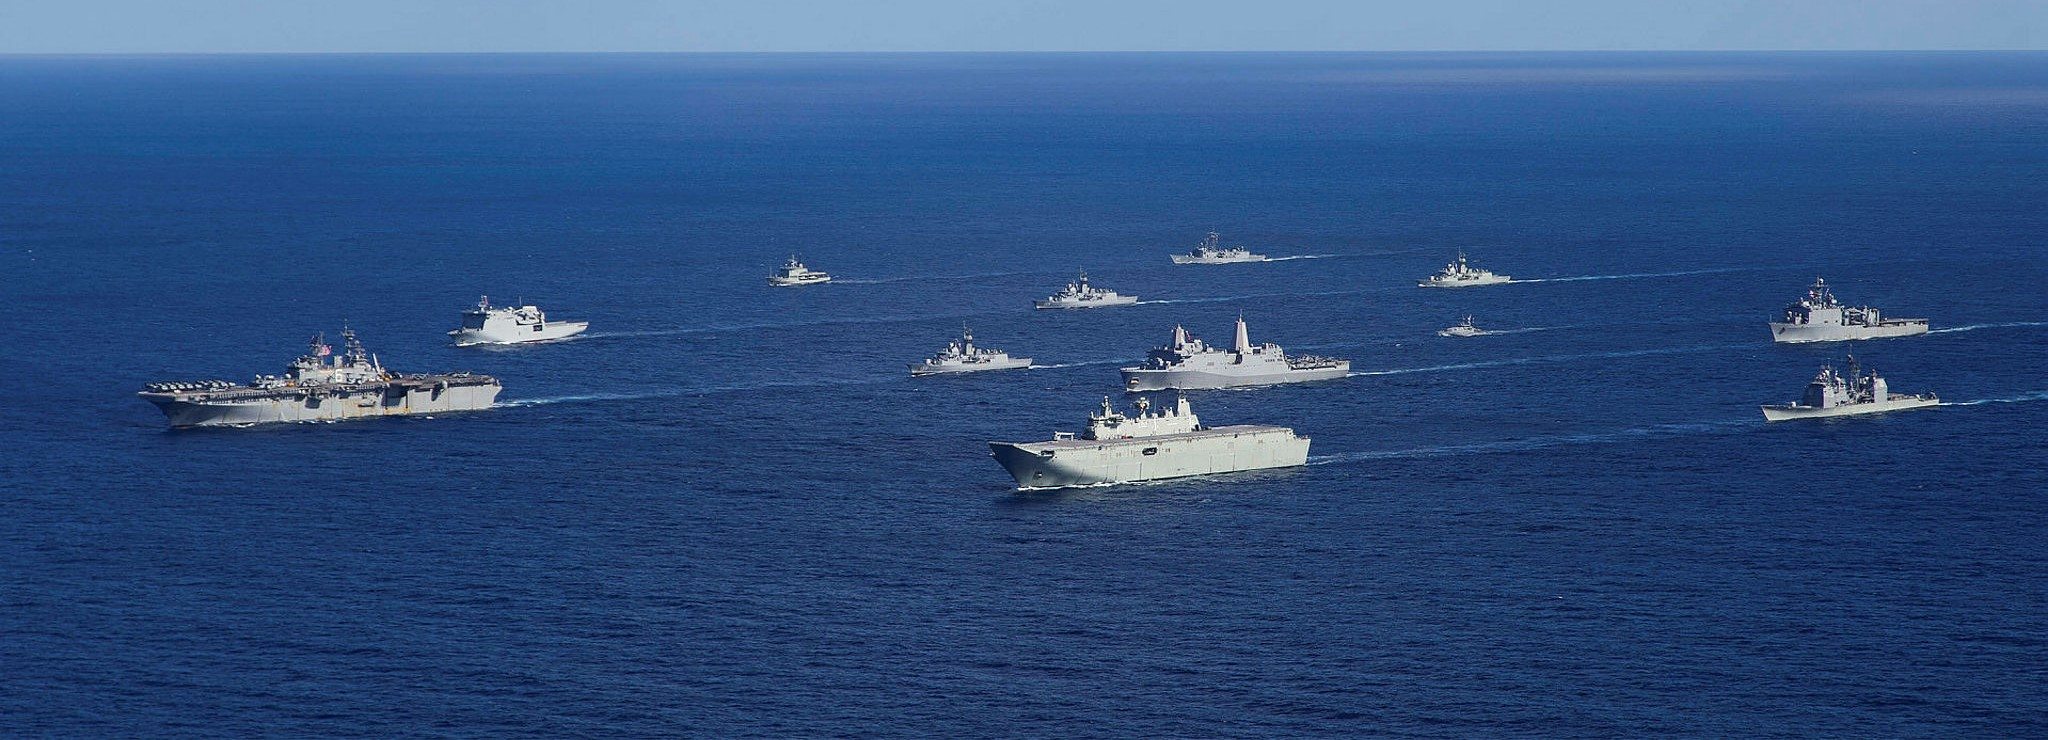 Navy ships from Australia, the US and New Zealand in formation during Exercise Talisman Sabre 17  (Photo: Australian Defence Image Library)